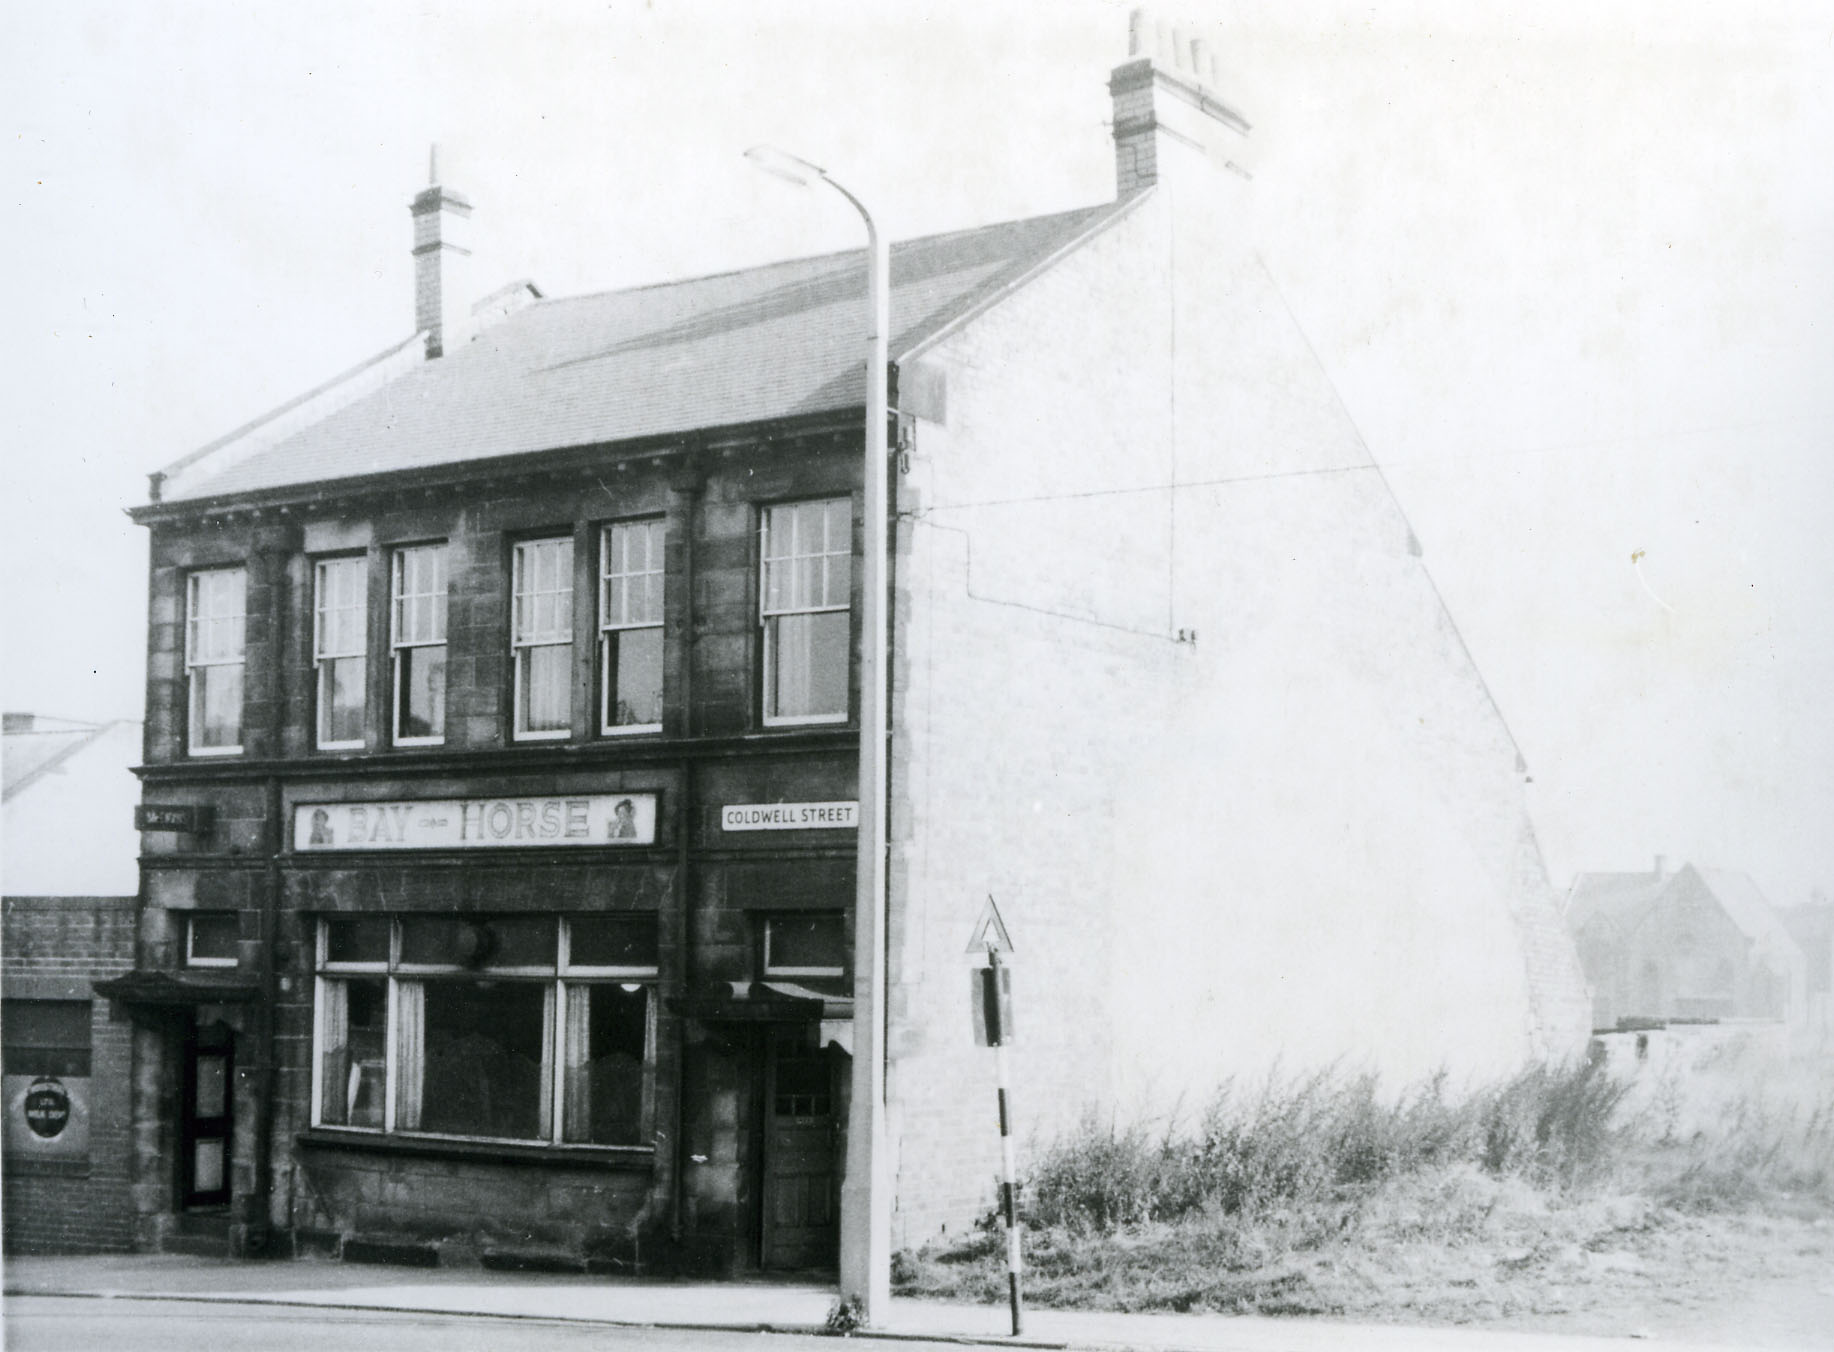 Bay Horse Public House, Coldwell Street, Felling